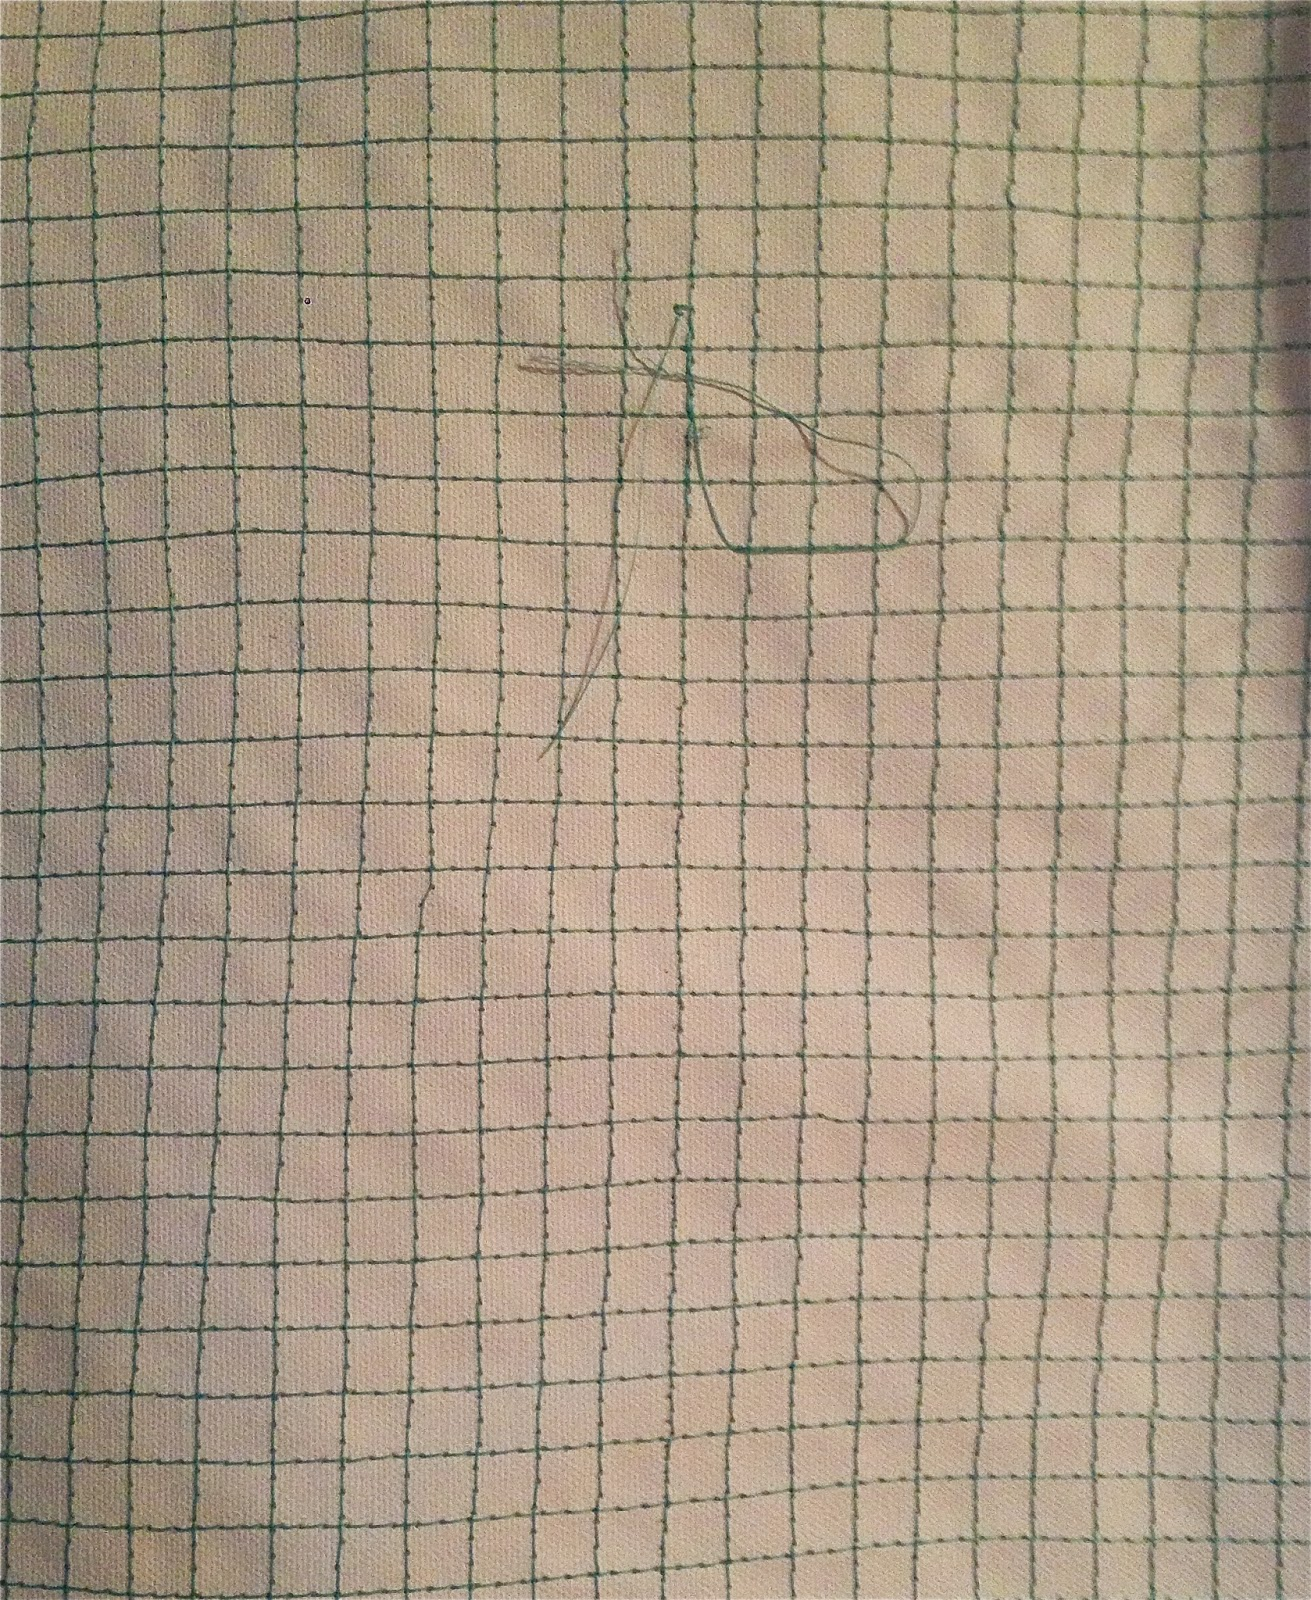 a formula for making graph paper in pied pantomime